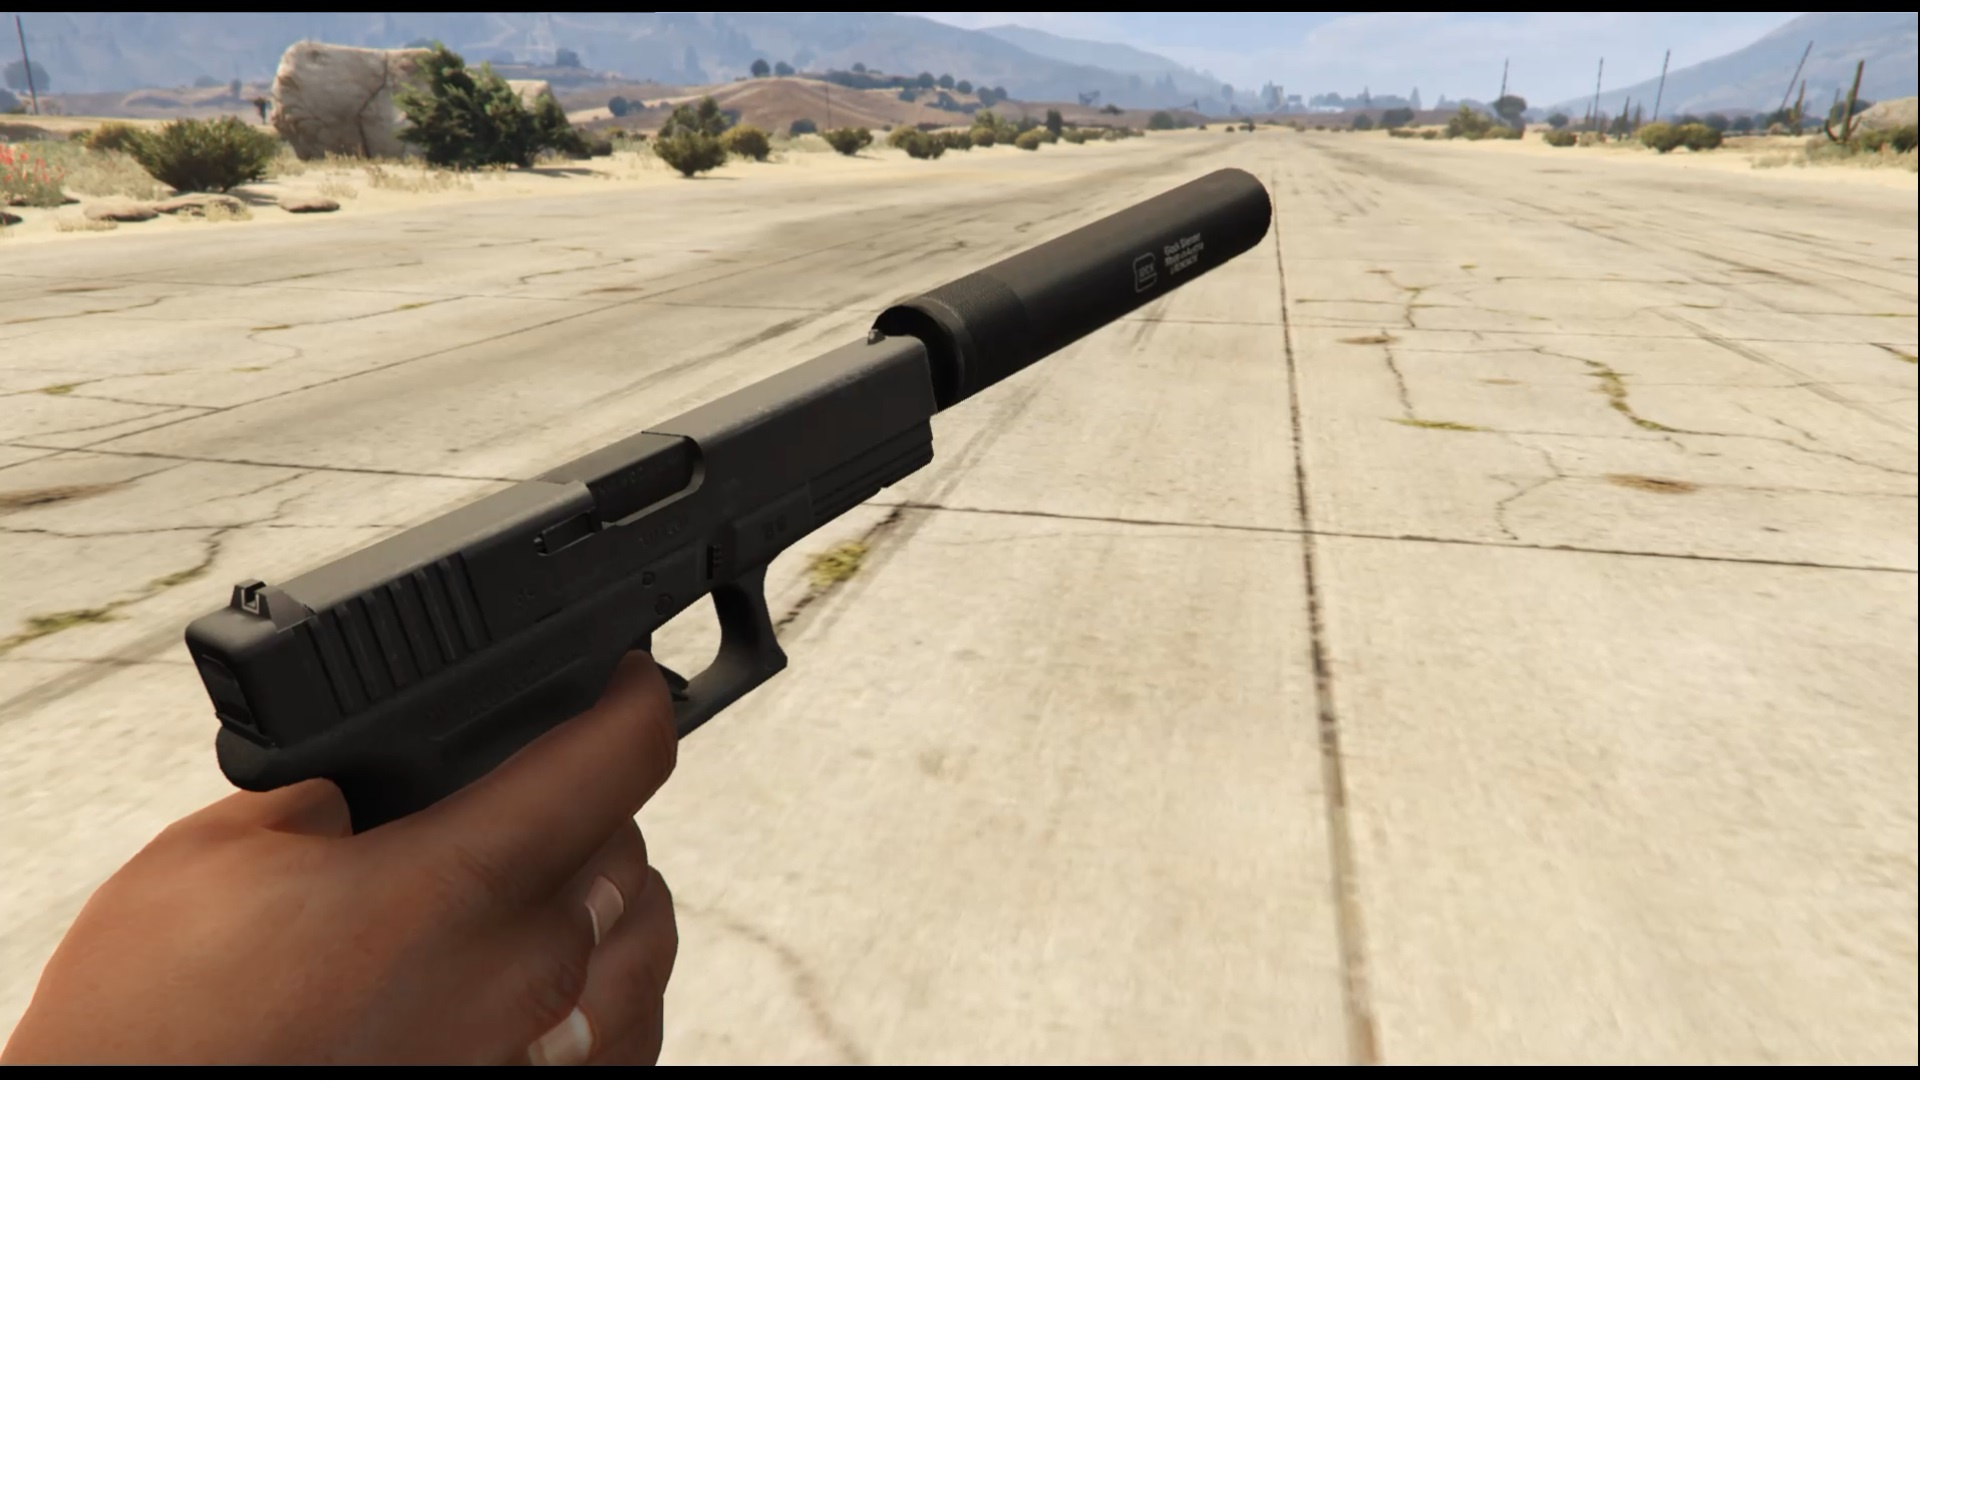 glock 17 with and without silencer gta5 mods com